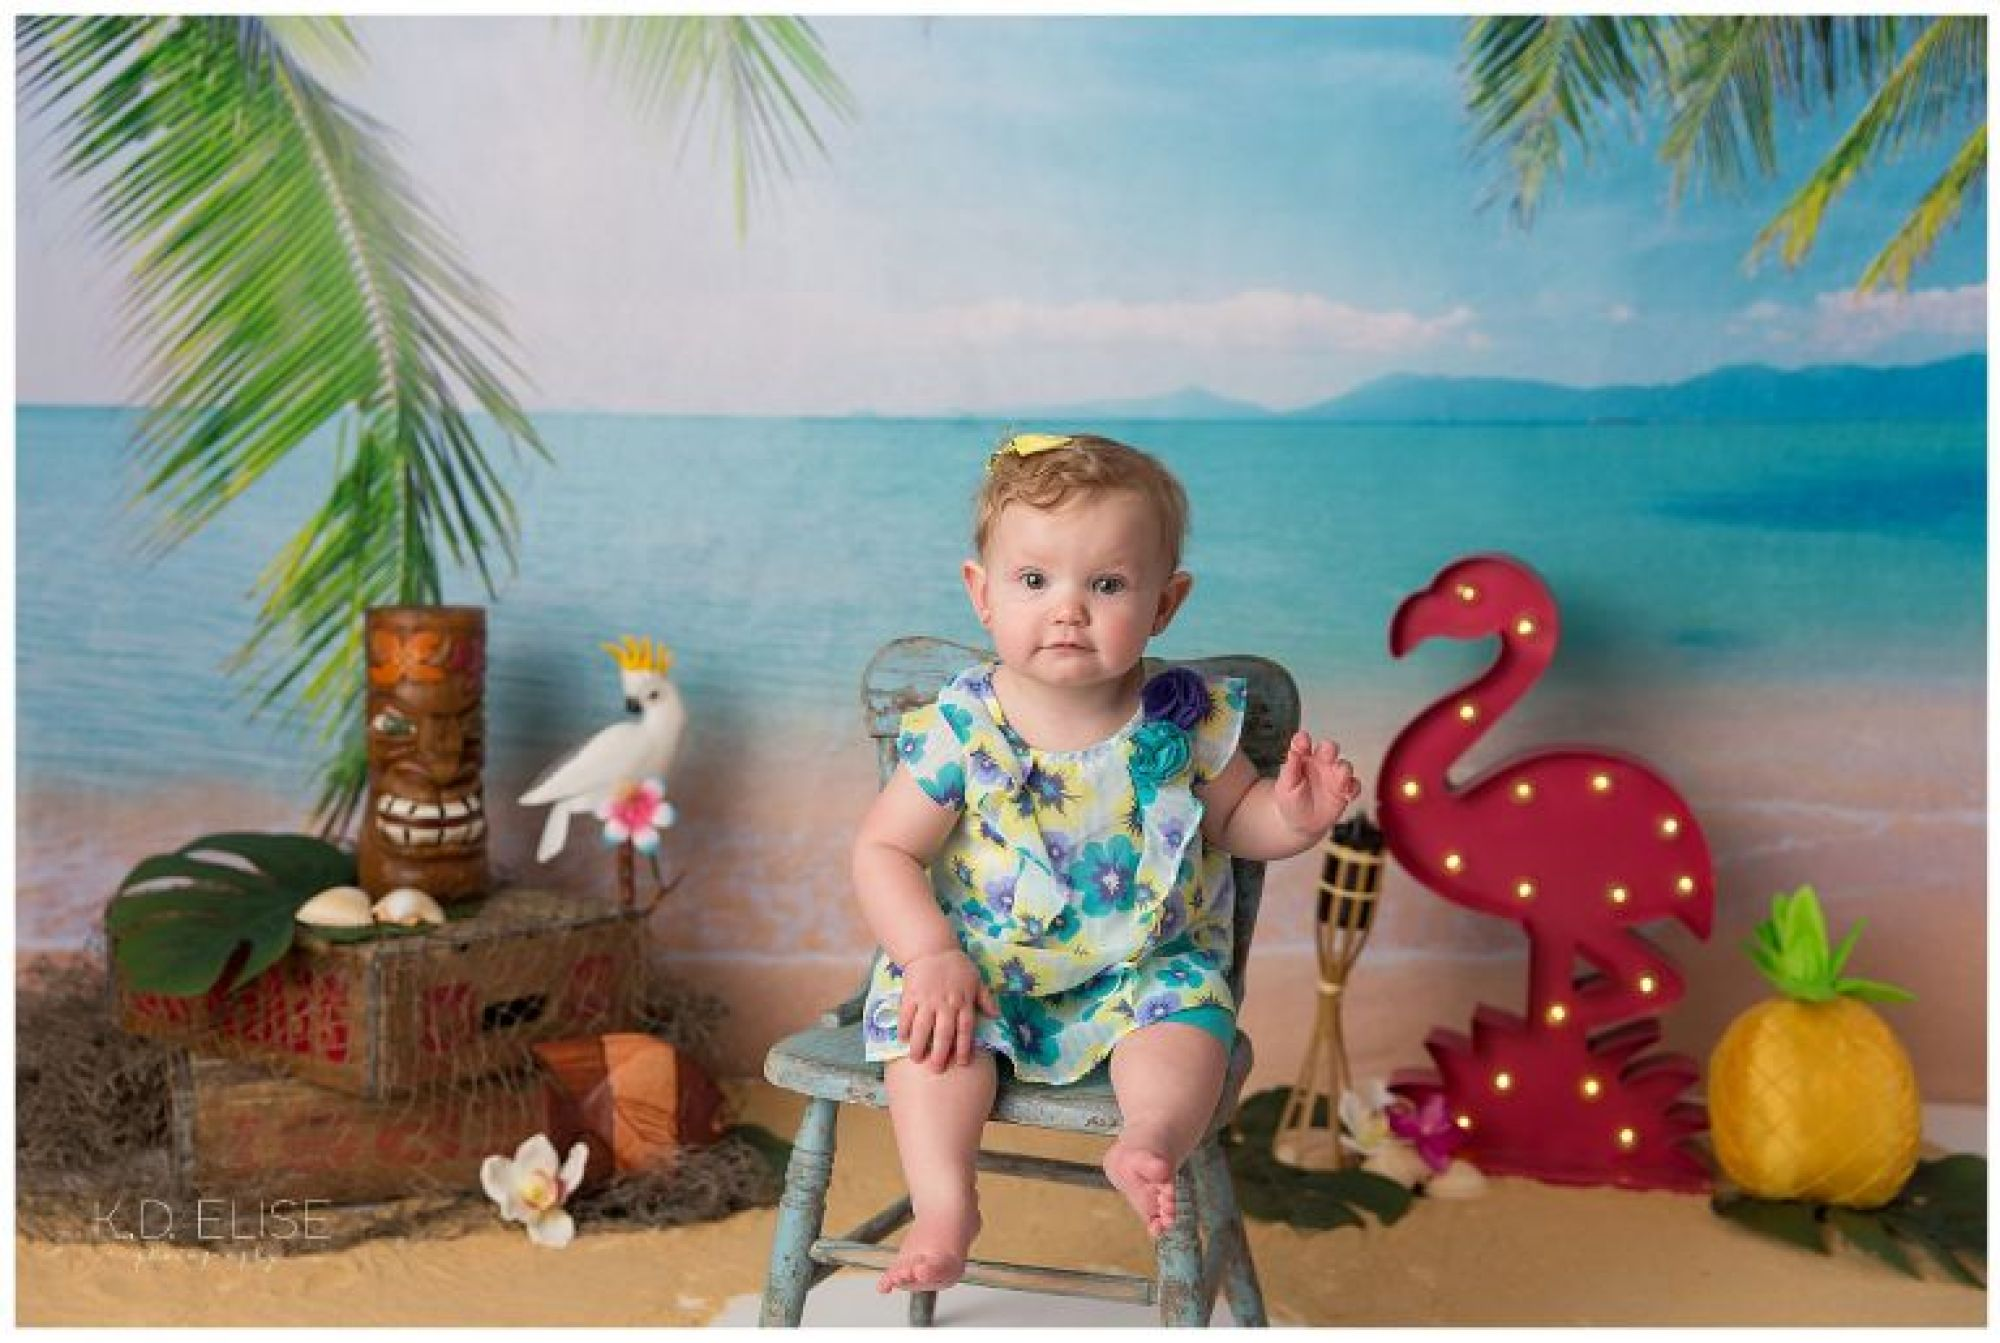 First birthday portrait of baby girl on luau themed cake smash backdrop.